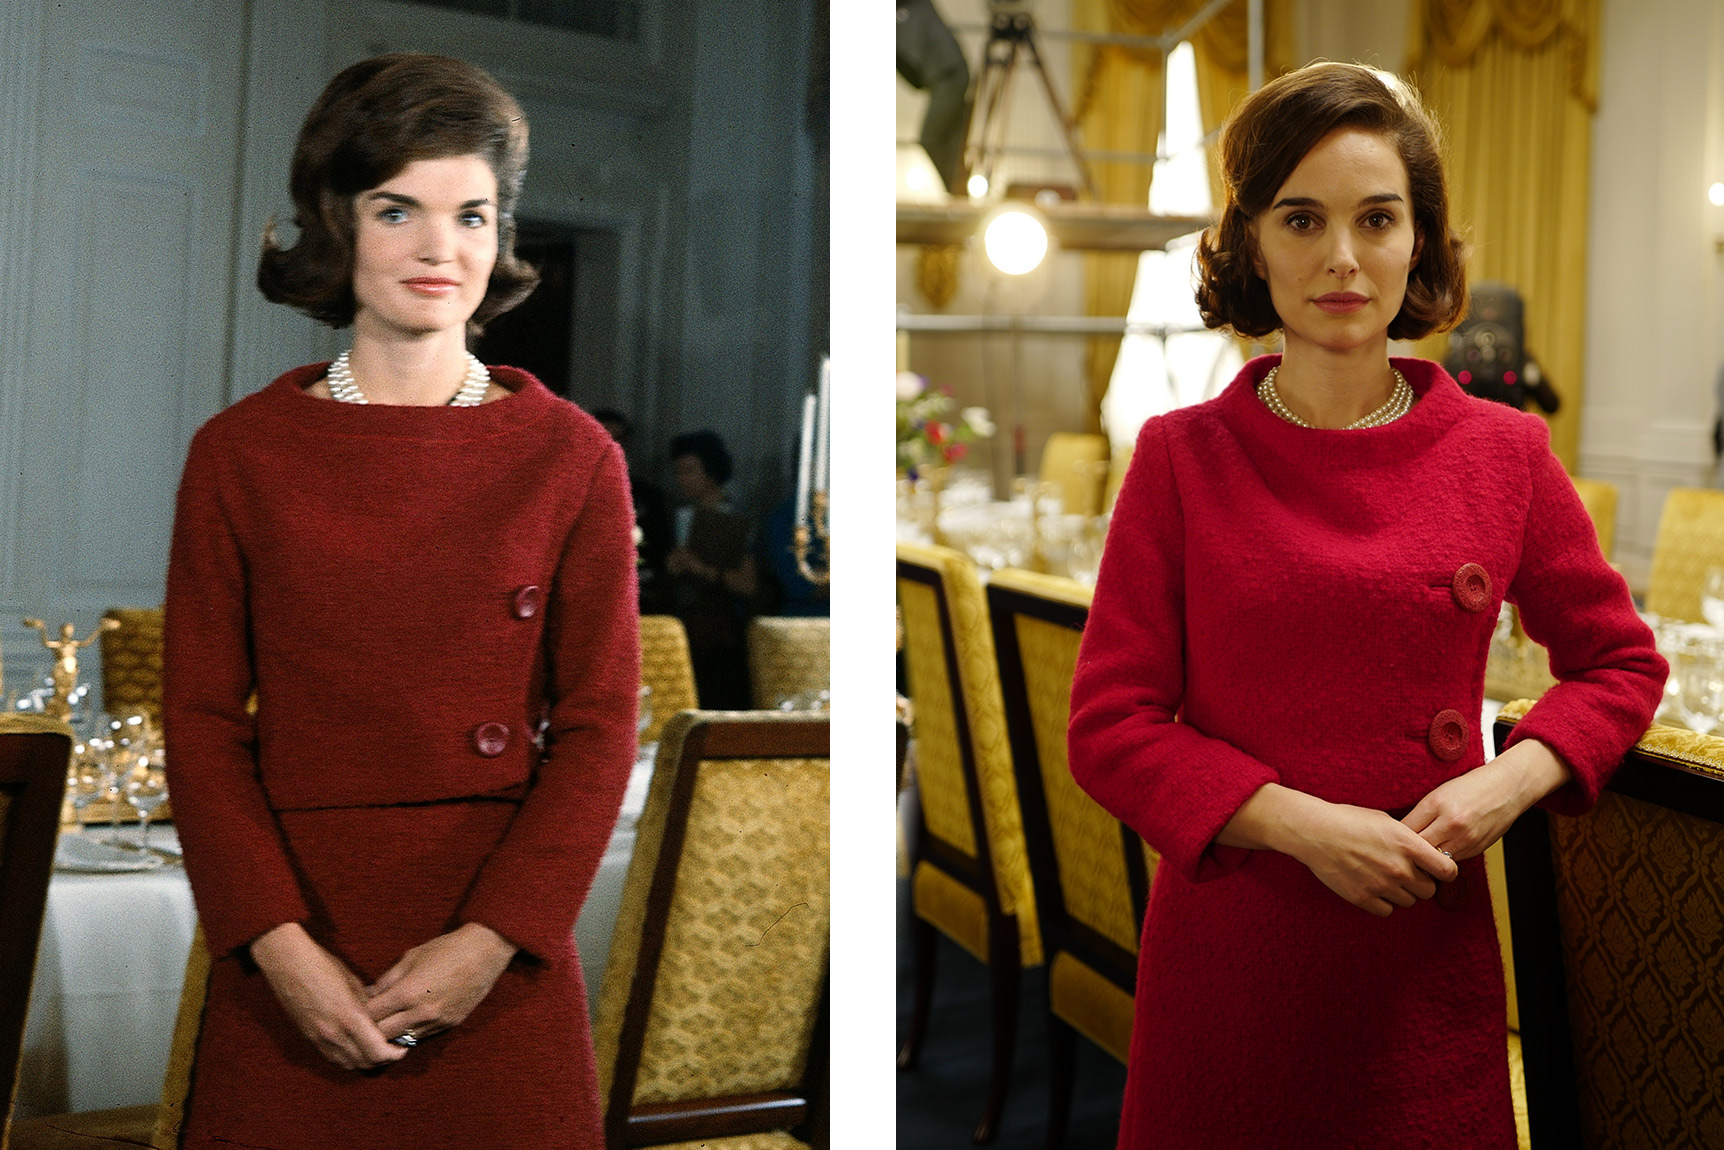 Left: American First Lady Jacqueline Kennedy (1929 - 1994), in a red dress, stands in before a dining room table in the White House during the filming of a CBS News Special program called 'A Tour of the White House with Mrs. John F. Kennedy,' Washington DC, January 15, 1962. (Photo by CBS Photo Archive/Getty Images) Right: Natalie Portman on the set of JACKIE. Photo by Pablo Larrain. © 2016 Twentieth Century Fox Film Corporation All Rights Reserved